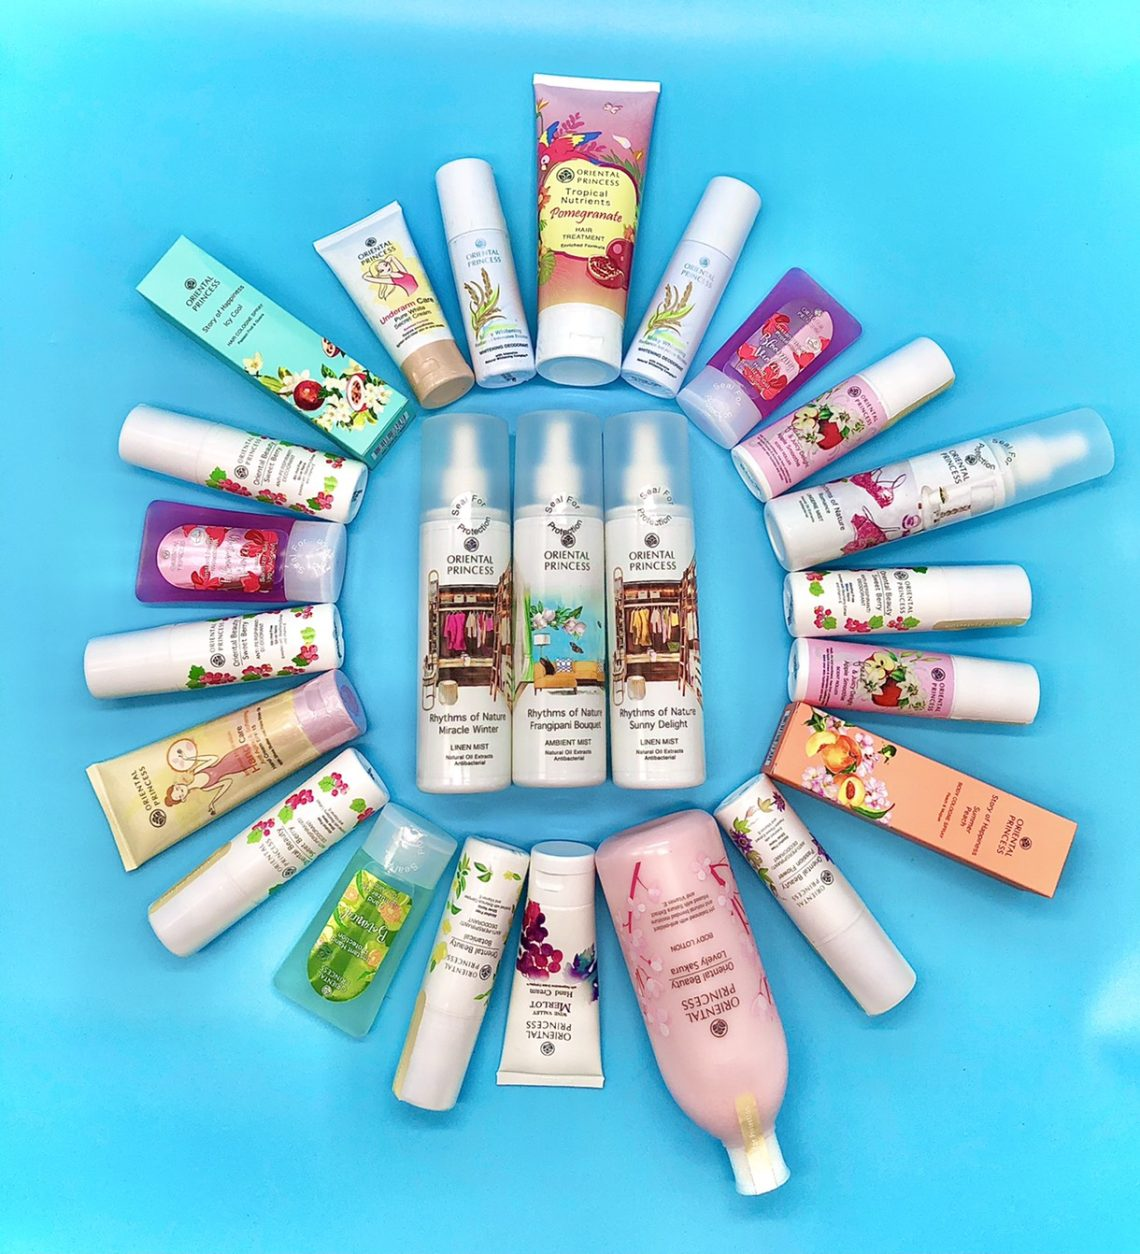 Oriental Princess Products